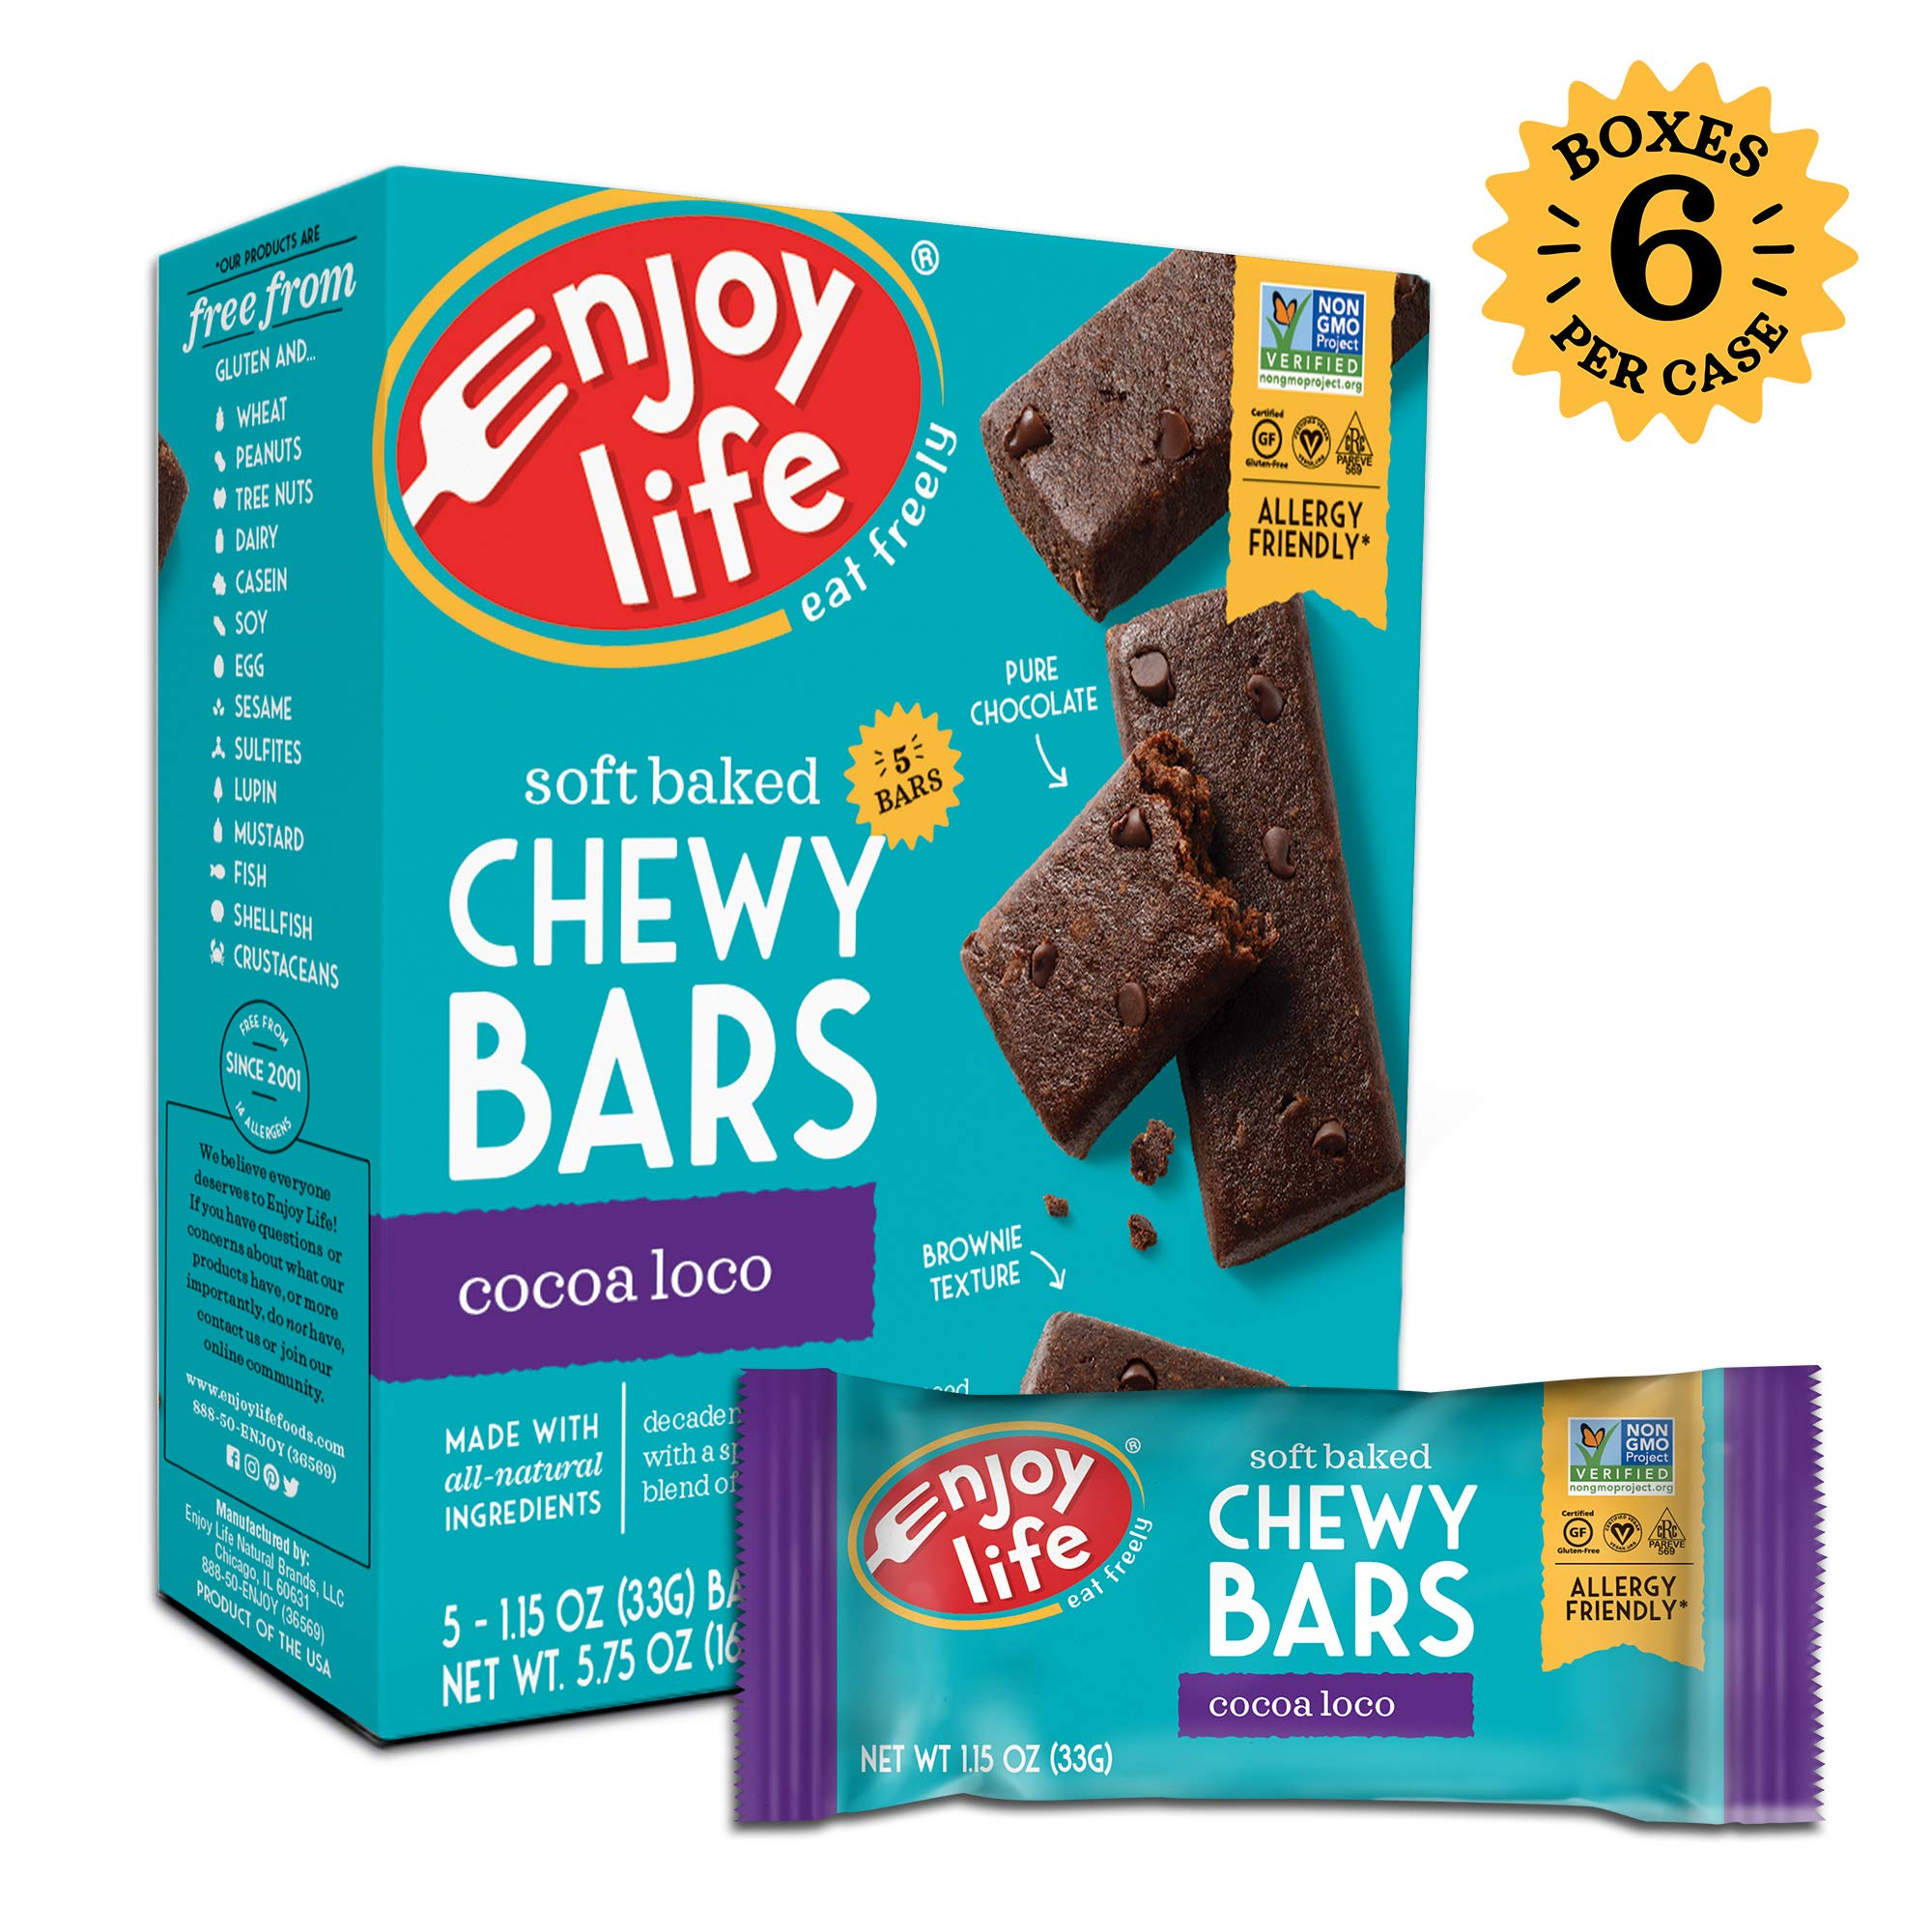 Enjoy Life Chewy Bars, Soy free, Nut free, Gluten free, Dairy free, Non GMO, Vegan, Cocoa Loco, 5 Count (Pack of 6) by Enjoy Life Foods